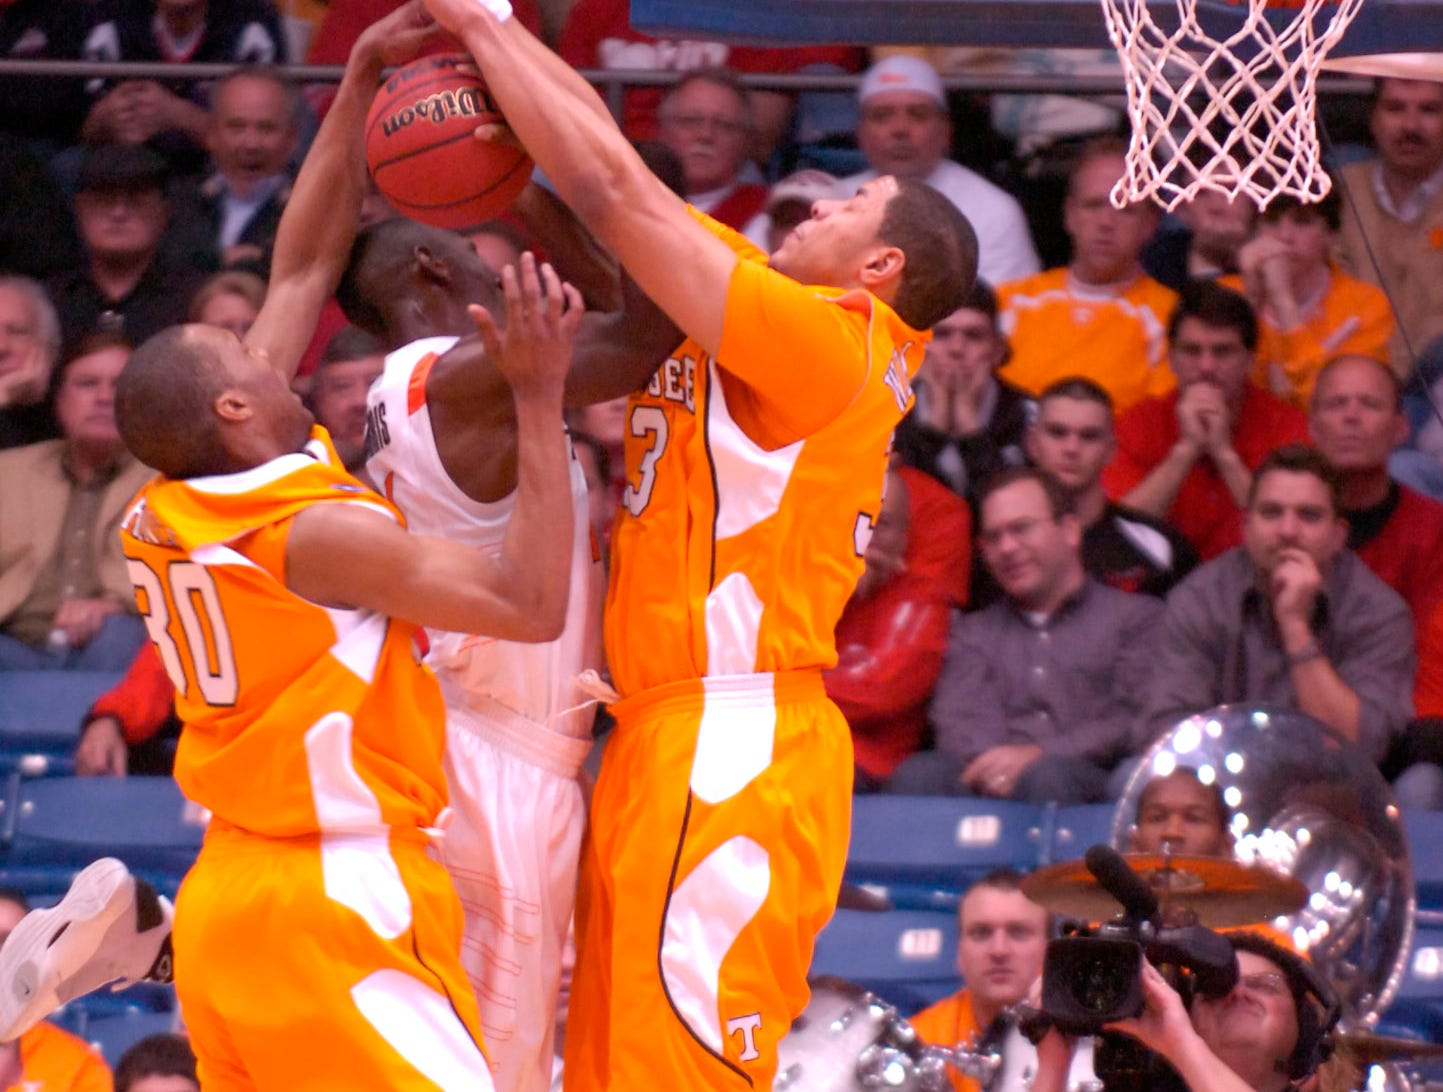 Tennessee's Brian Williams and J.P. Prince pressure Oklahoma State'sTerrel Harris as he tries to shoot during the first round of the 2009 NCAA tournament in Dayton, OH on Friday. UT lost the game 77-75 ending their post season play.